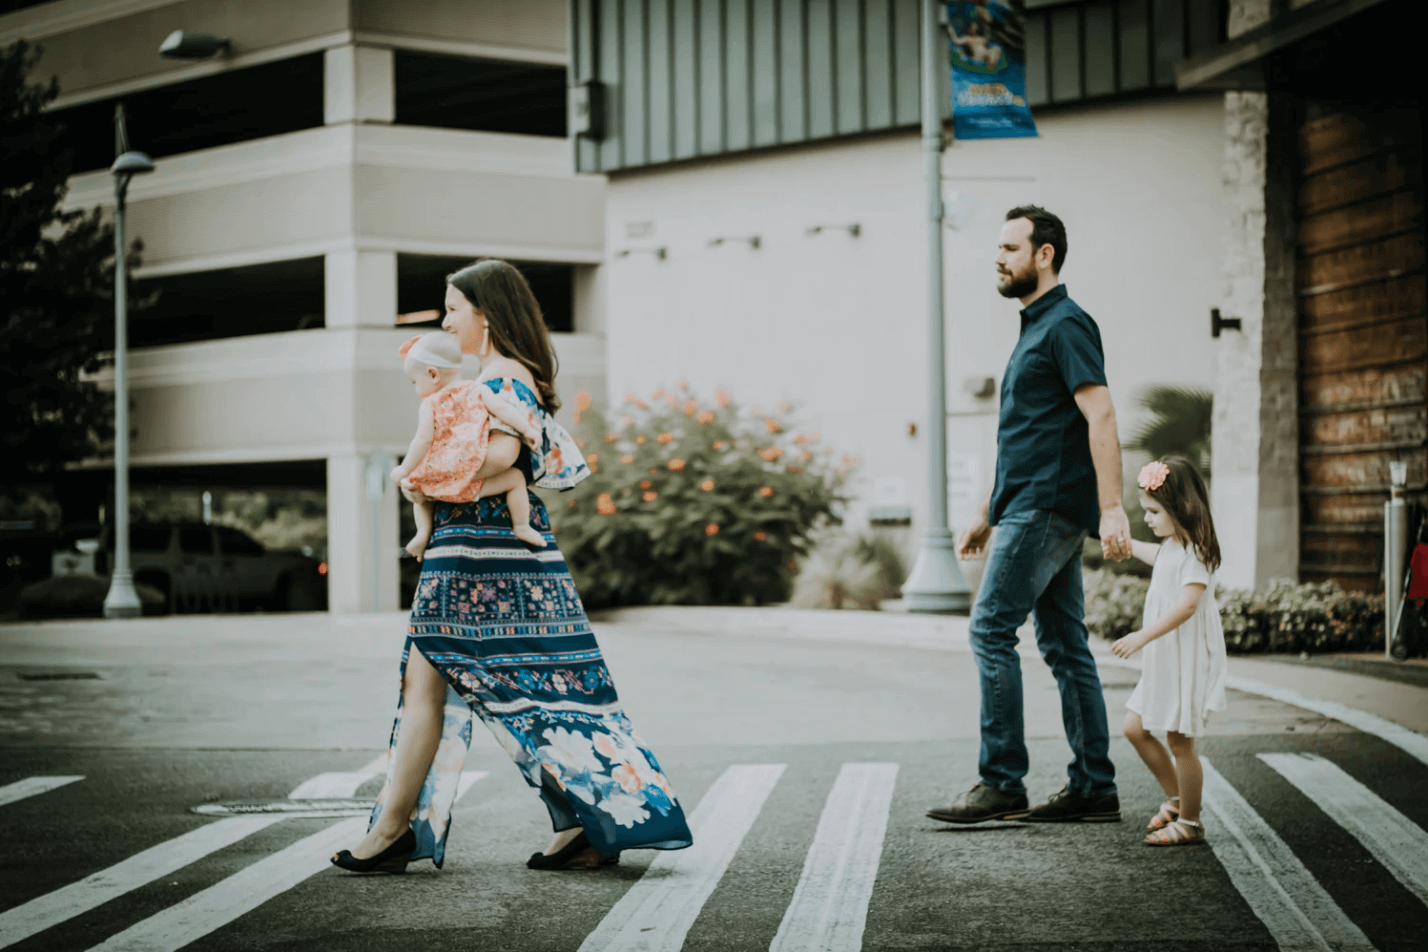 Family Crossing the Street.